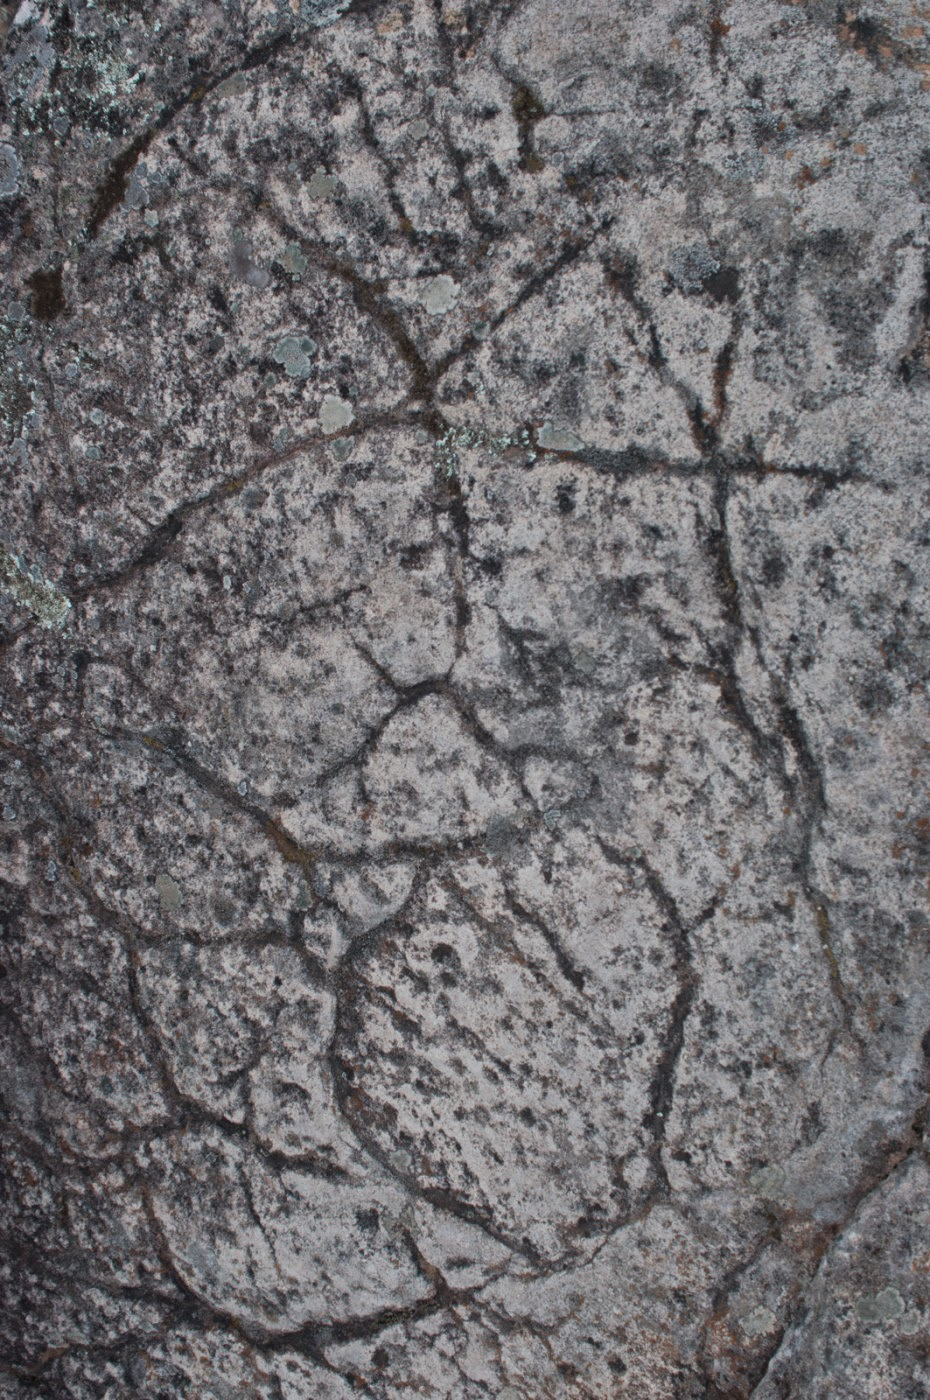 Grampians, sandstone, northern Grampians, Tim Macauley, Timothy Macauley, geology, abstract, abstraction, graphic, graphical, ground, floor, texture, rock, you won't see this at MoMA, victoria, Australia,